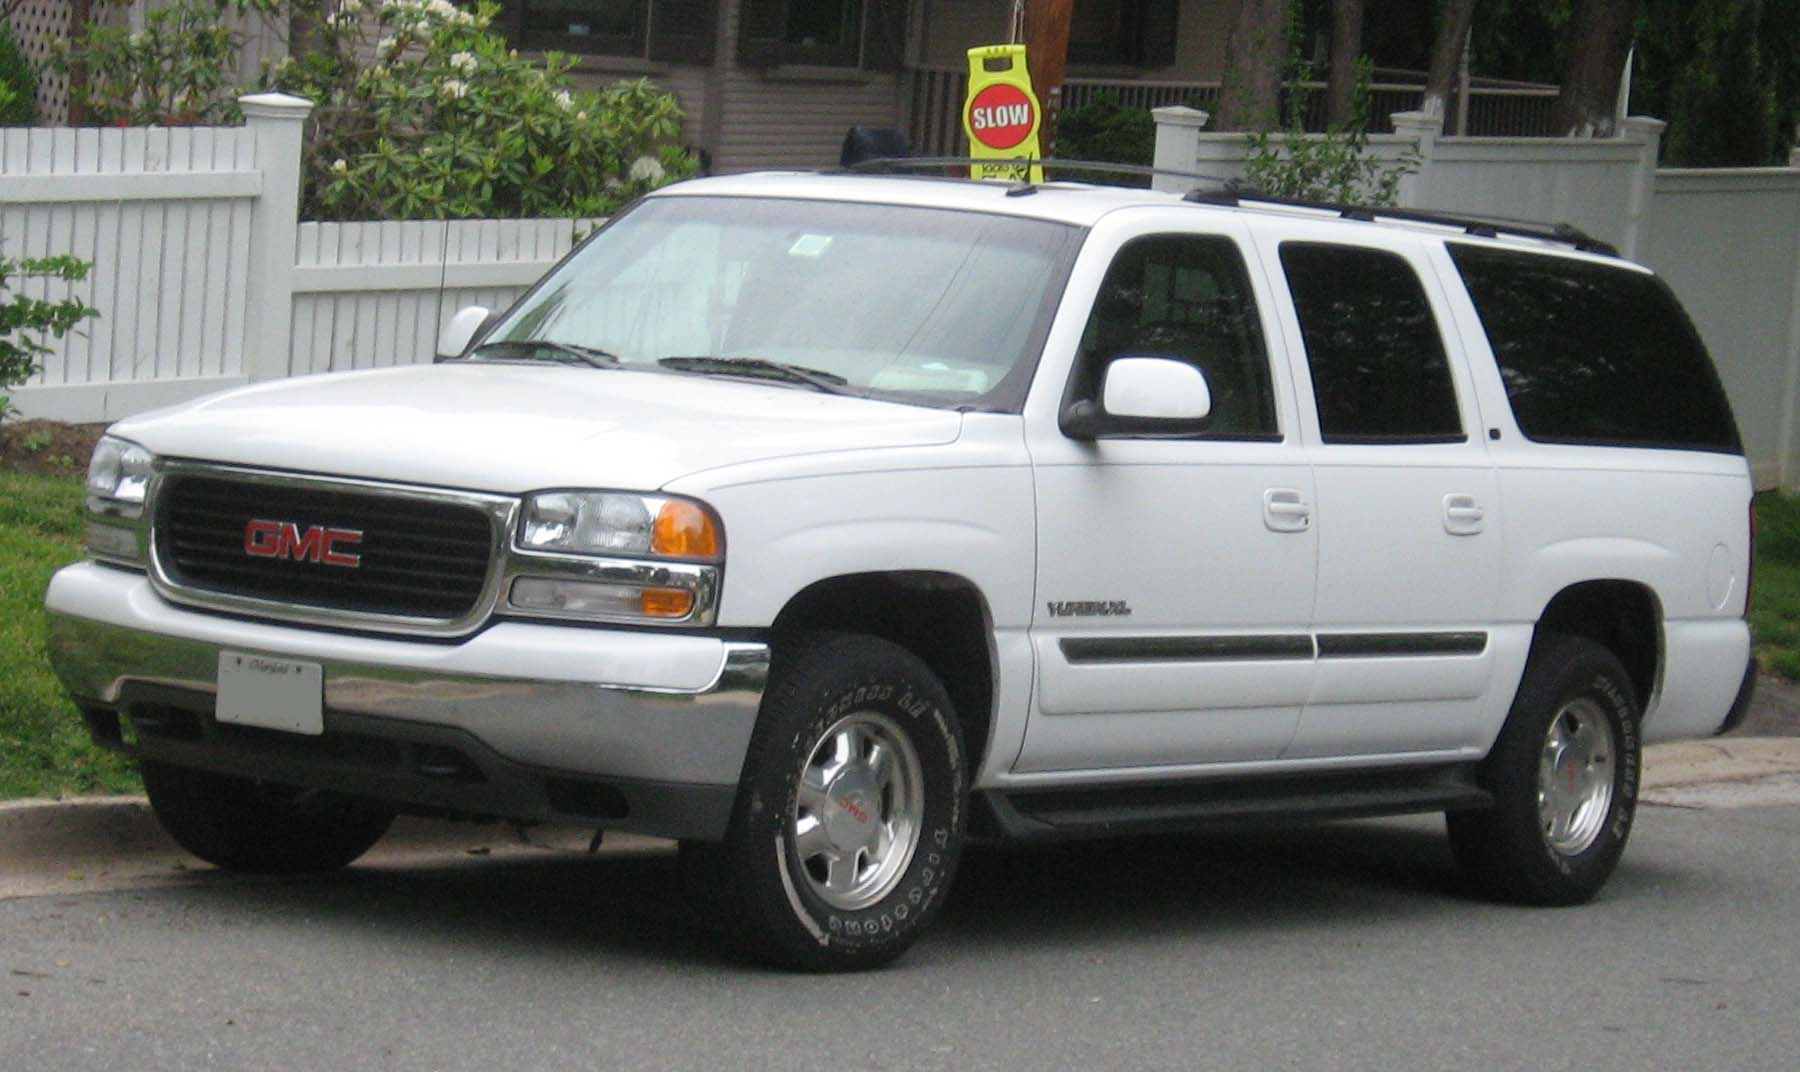 2000 gmc yukon xl information and photos momentcar. Black Bedroom Furniture Sets. Home Design Ideas